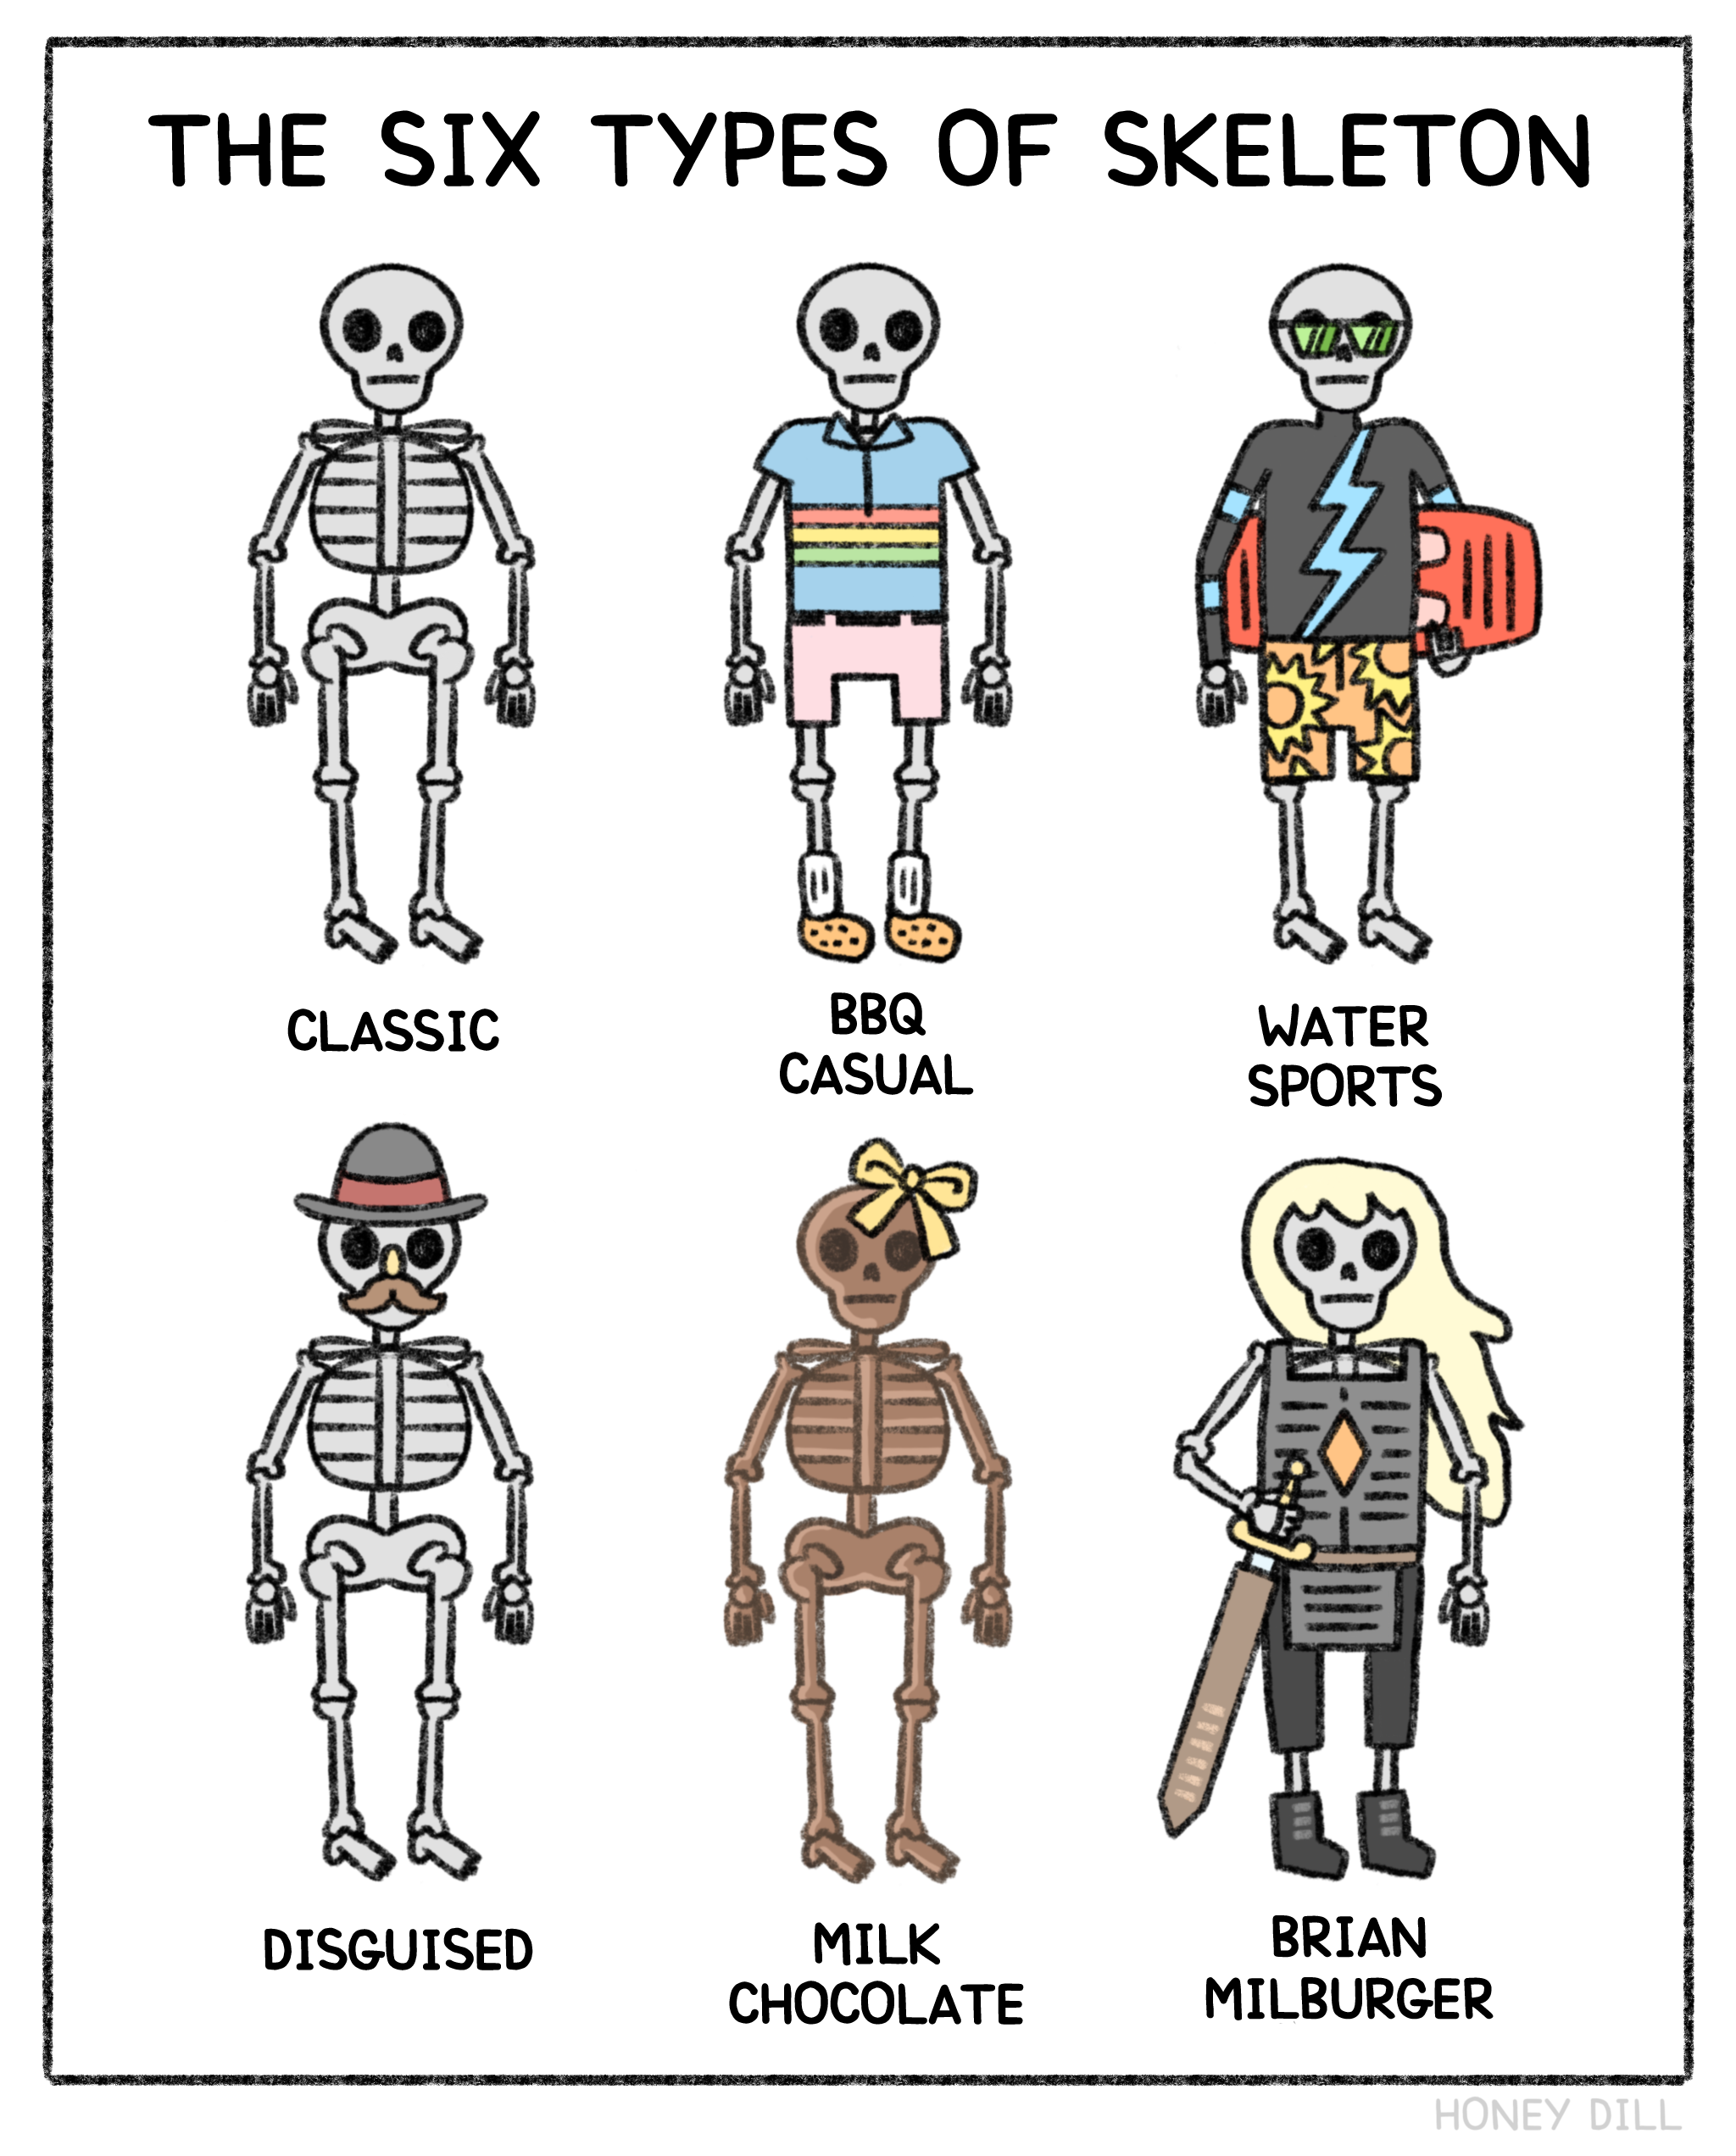 sixskeletons-IG-01.png